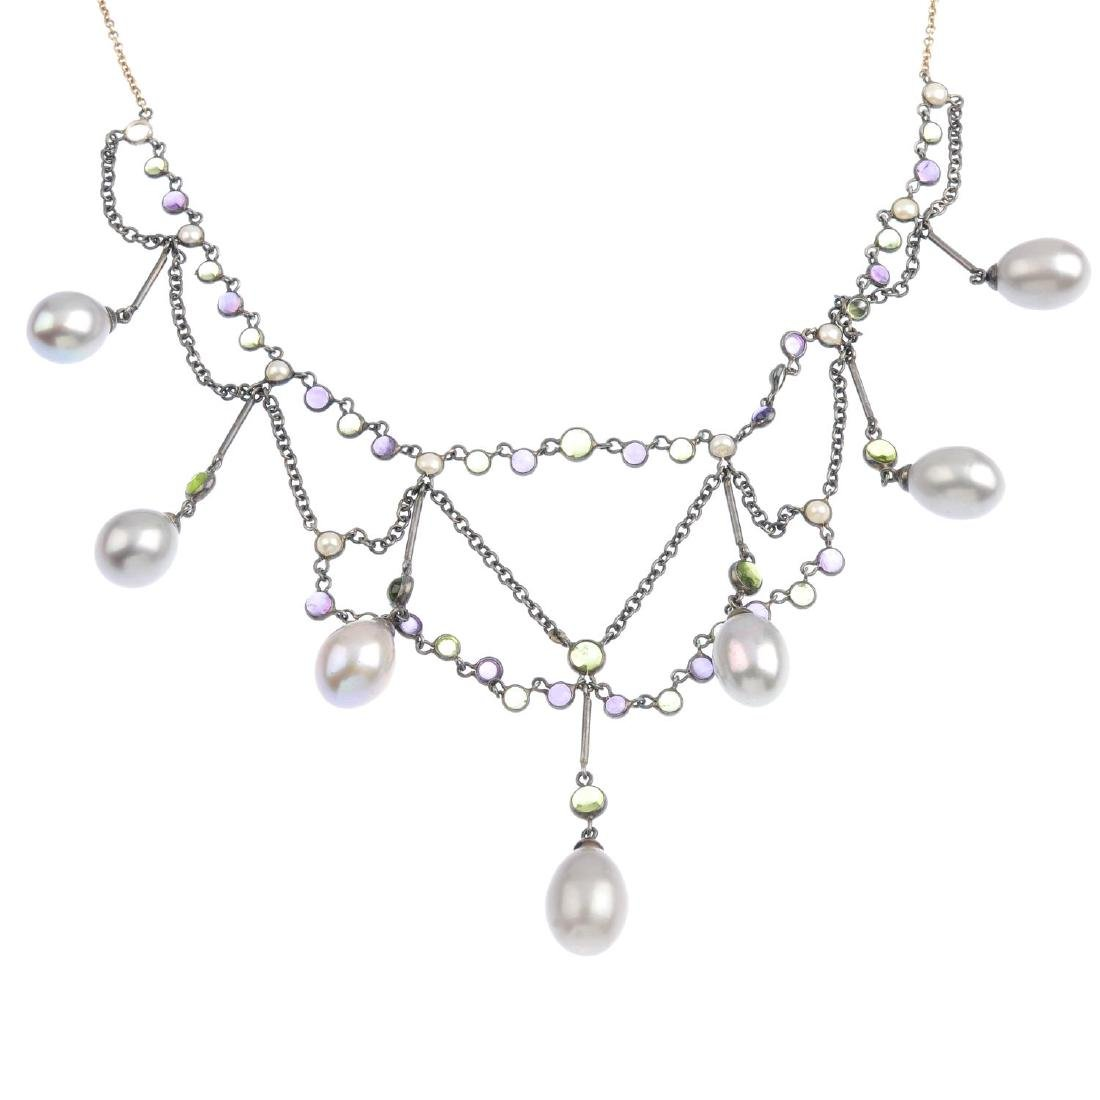 A cultured pearl and gem-set necklace. Designed as an